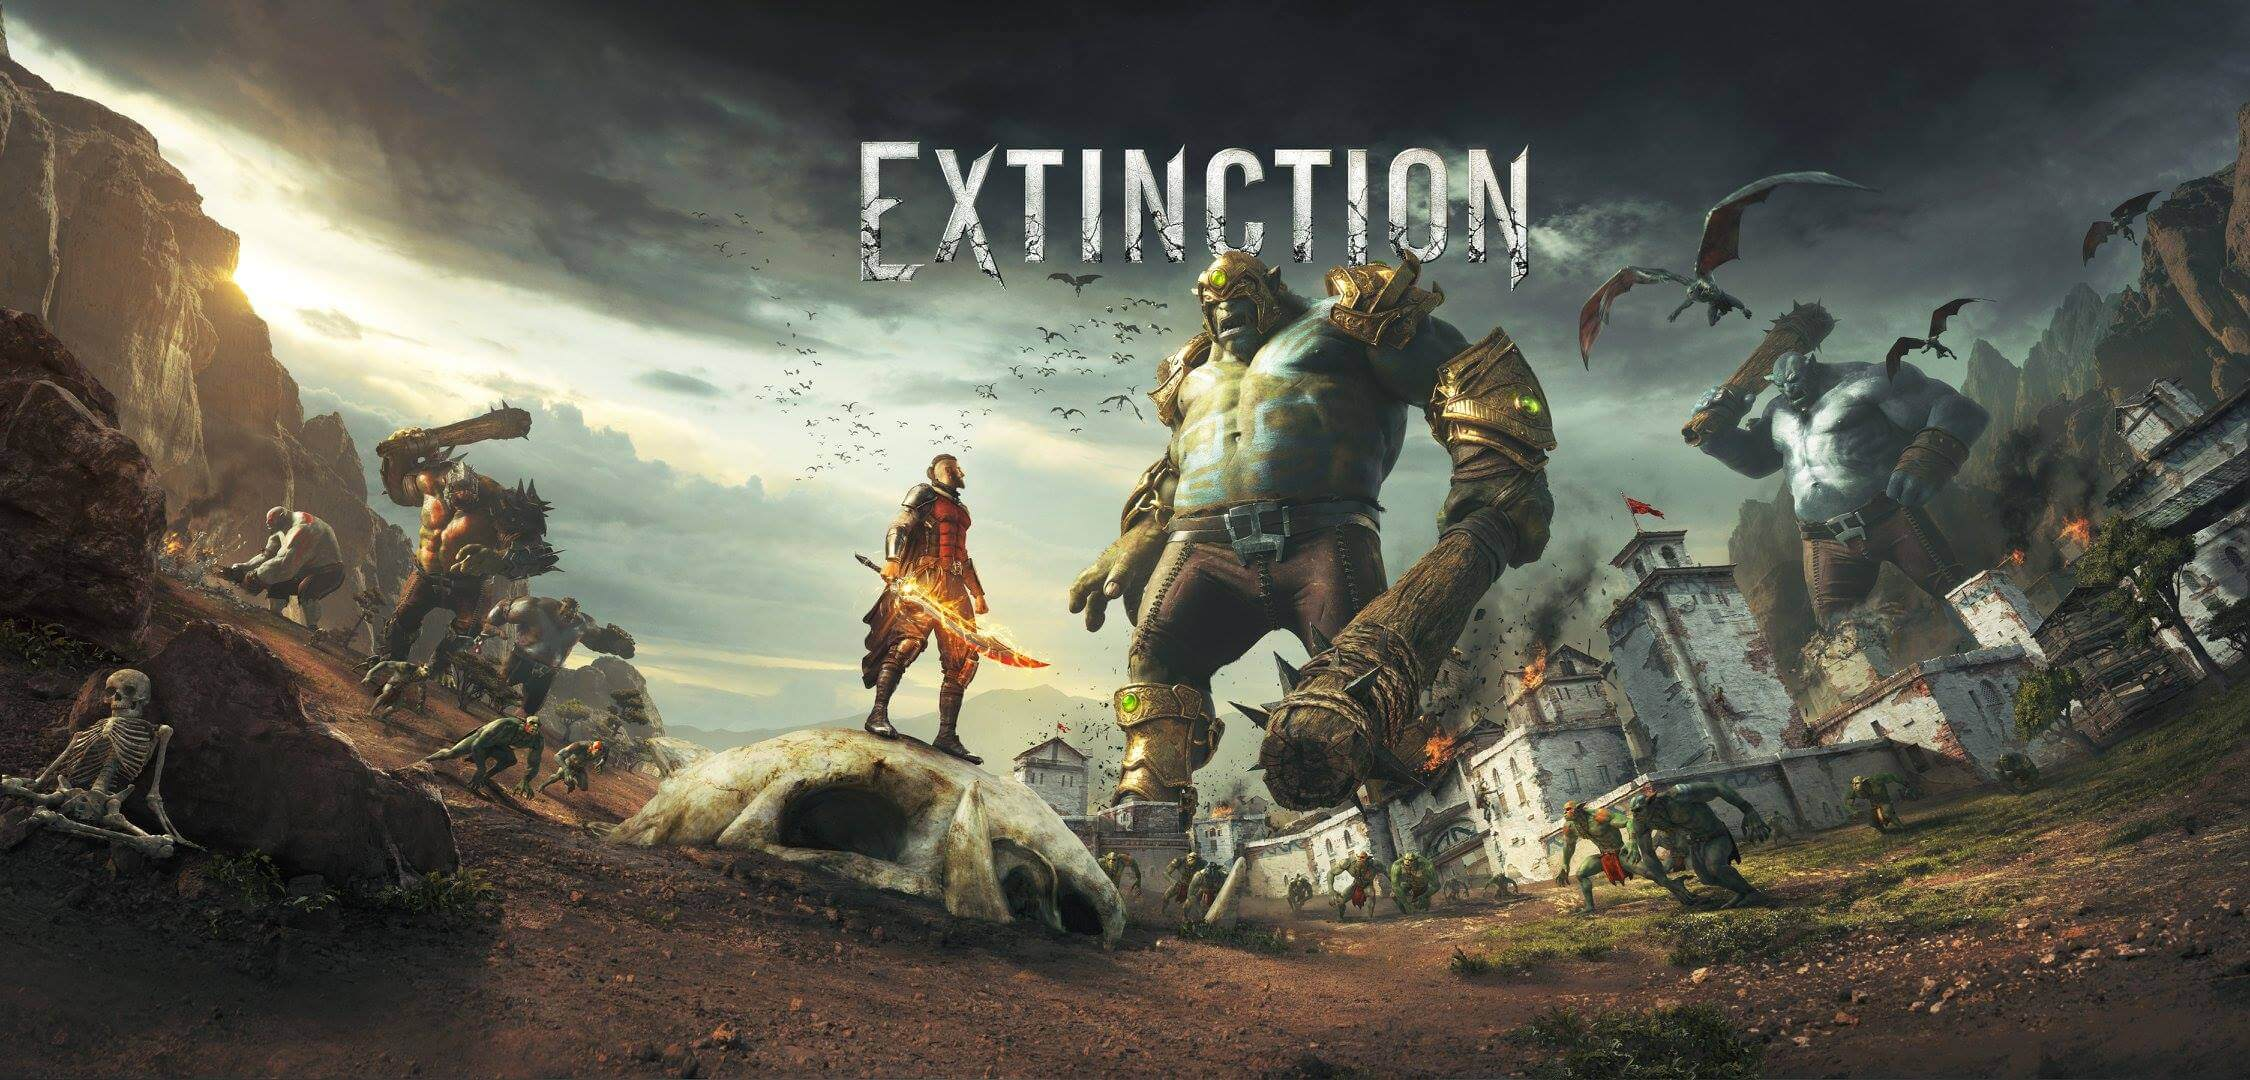 extinction game 1 - Decapitate Giants in Extinction